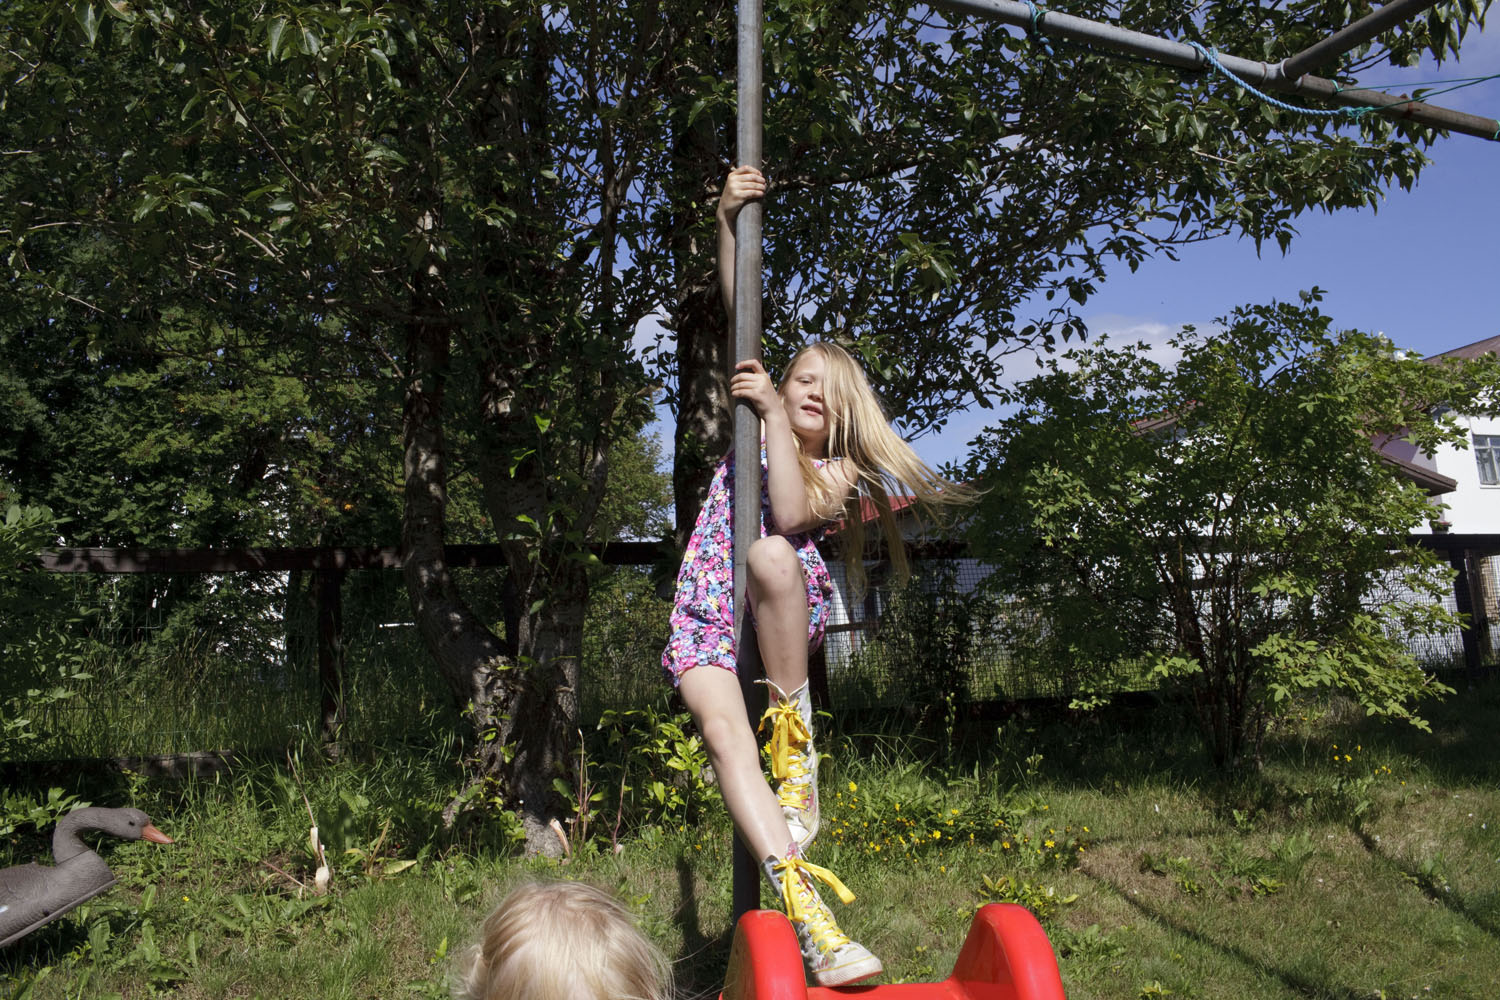 A girl plays in her backyard in Reykjavik after a morning at the pool with her mother and younger sister.